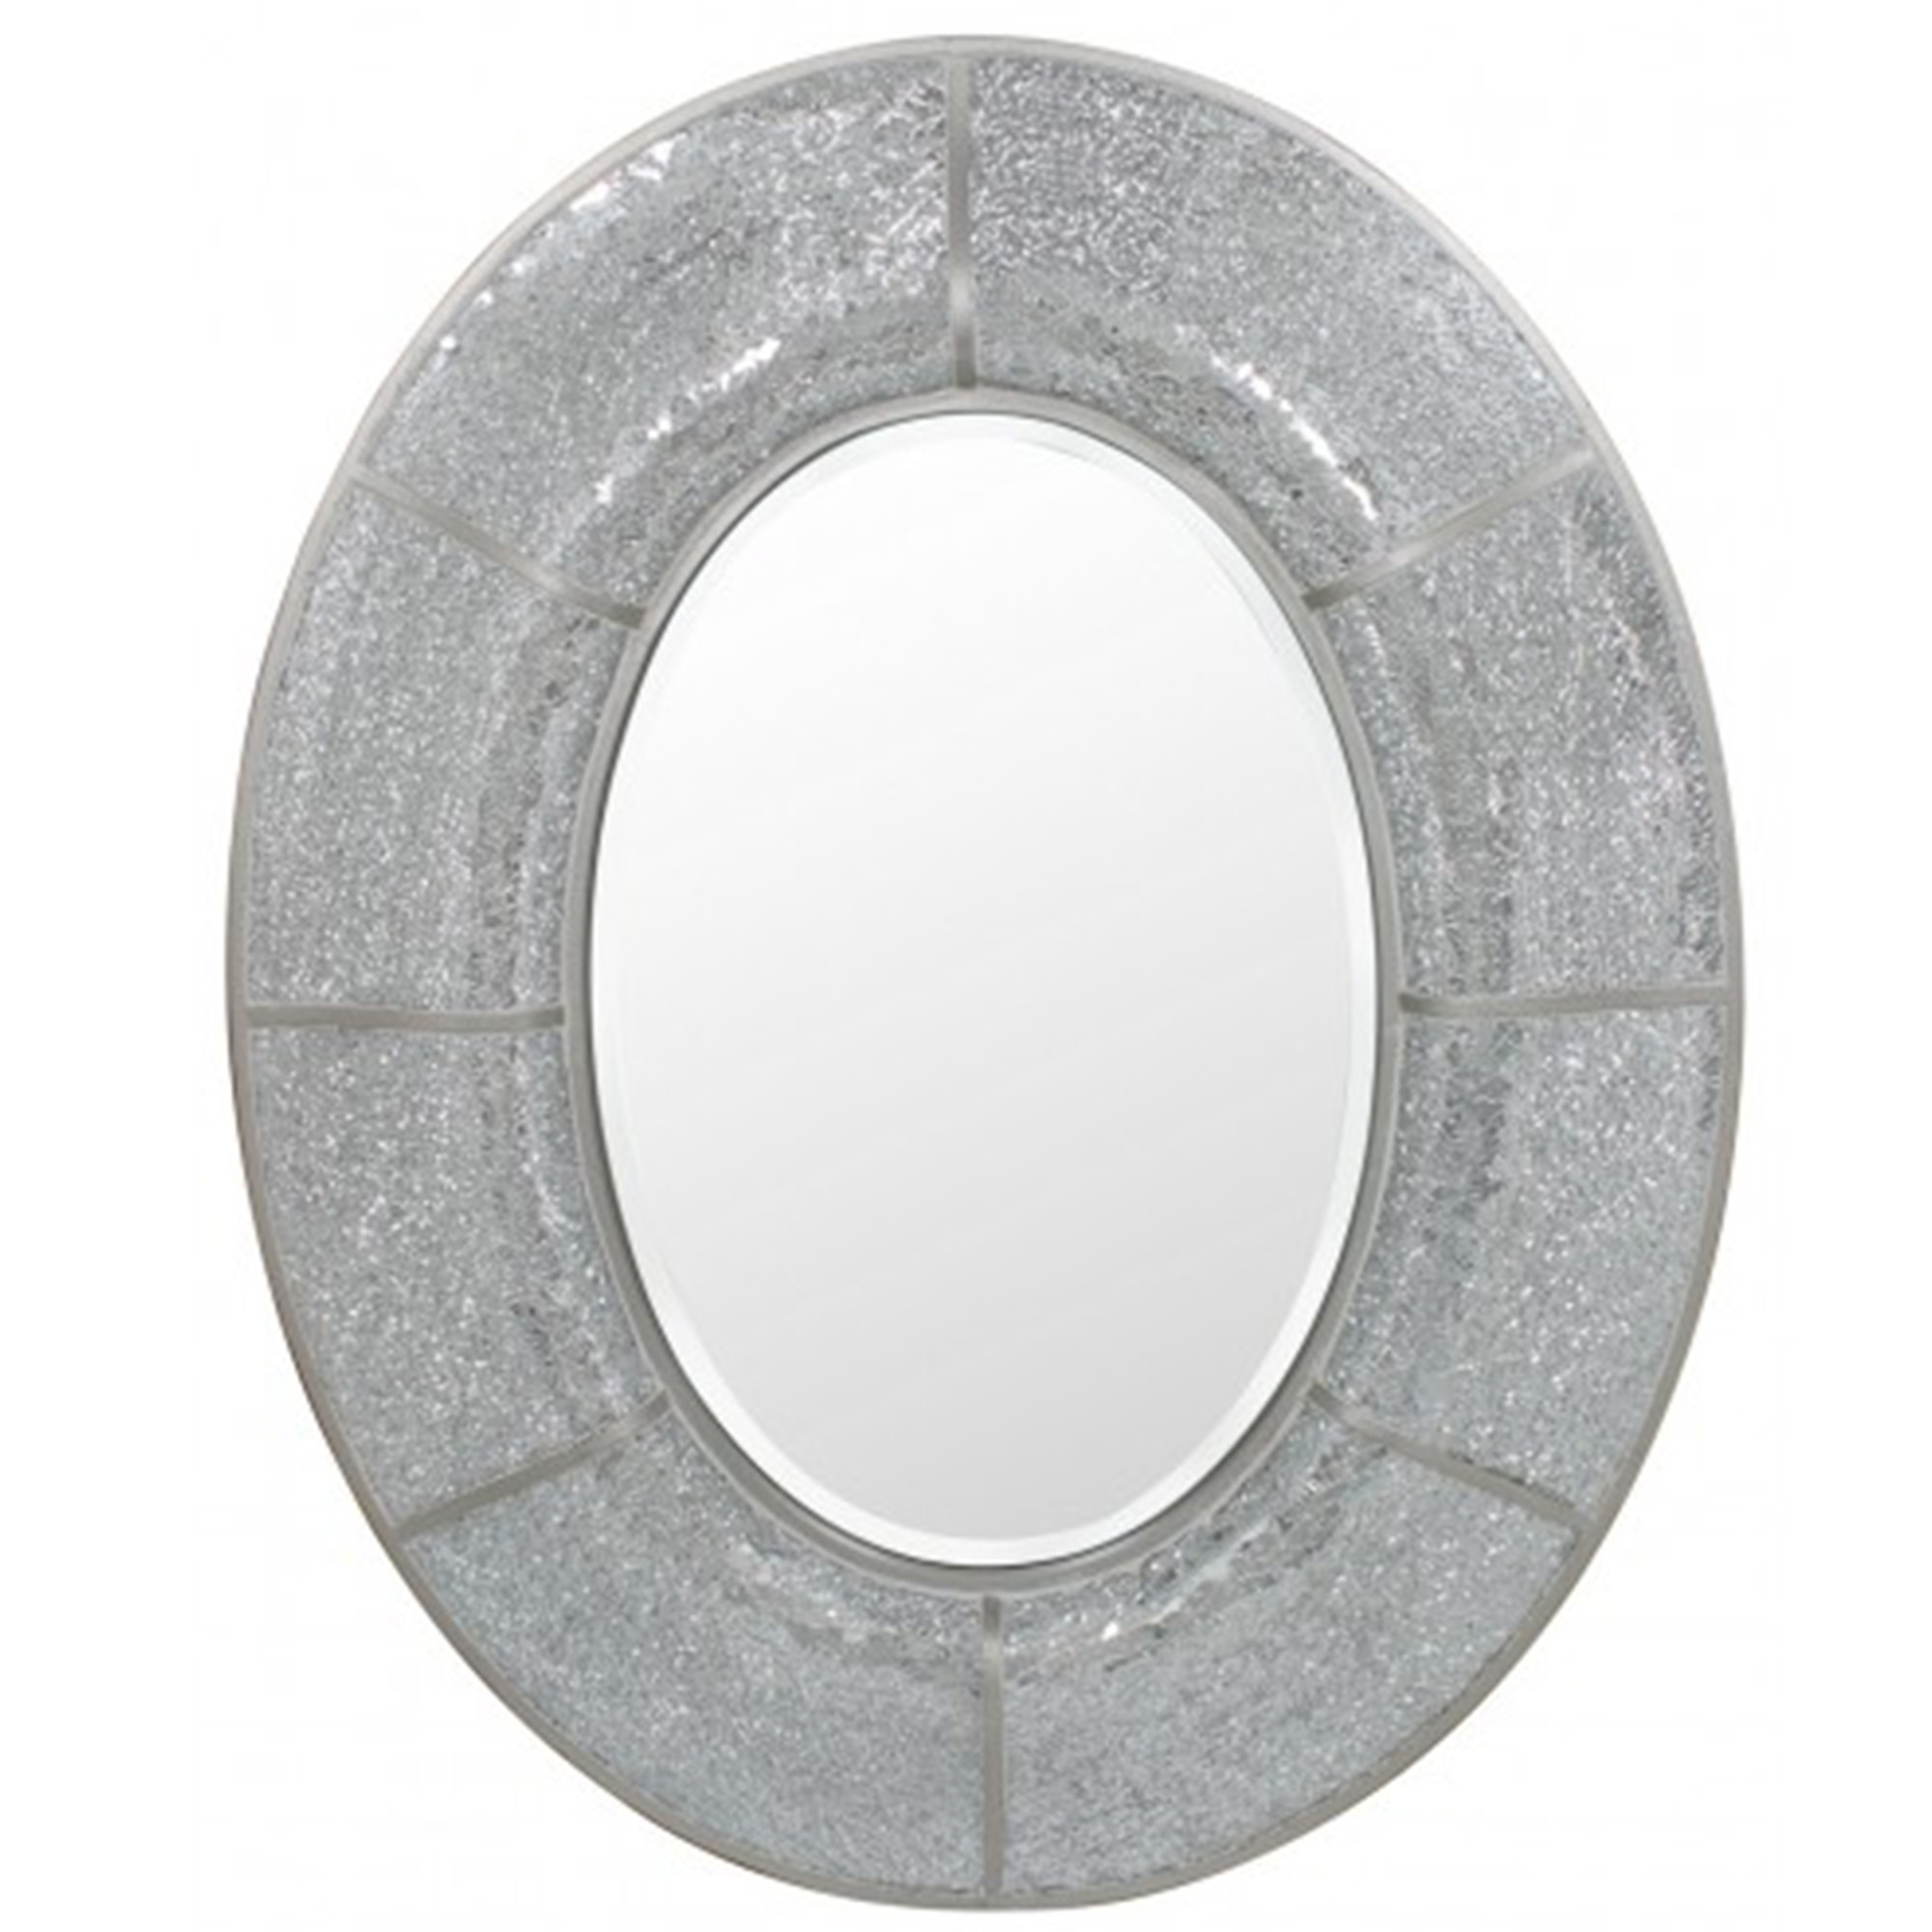 Silver Mosaic Oval Wall Mirror French Mirrors From Homesdirect 365 Uk